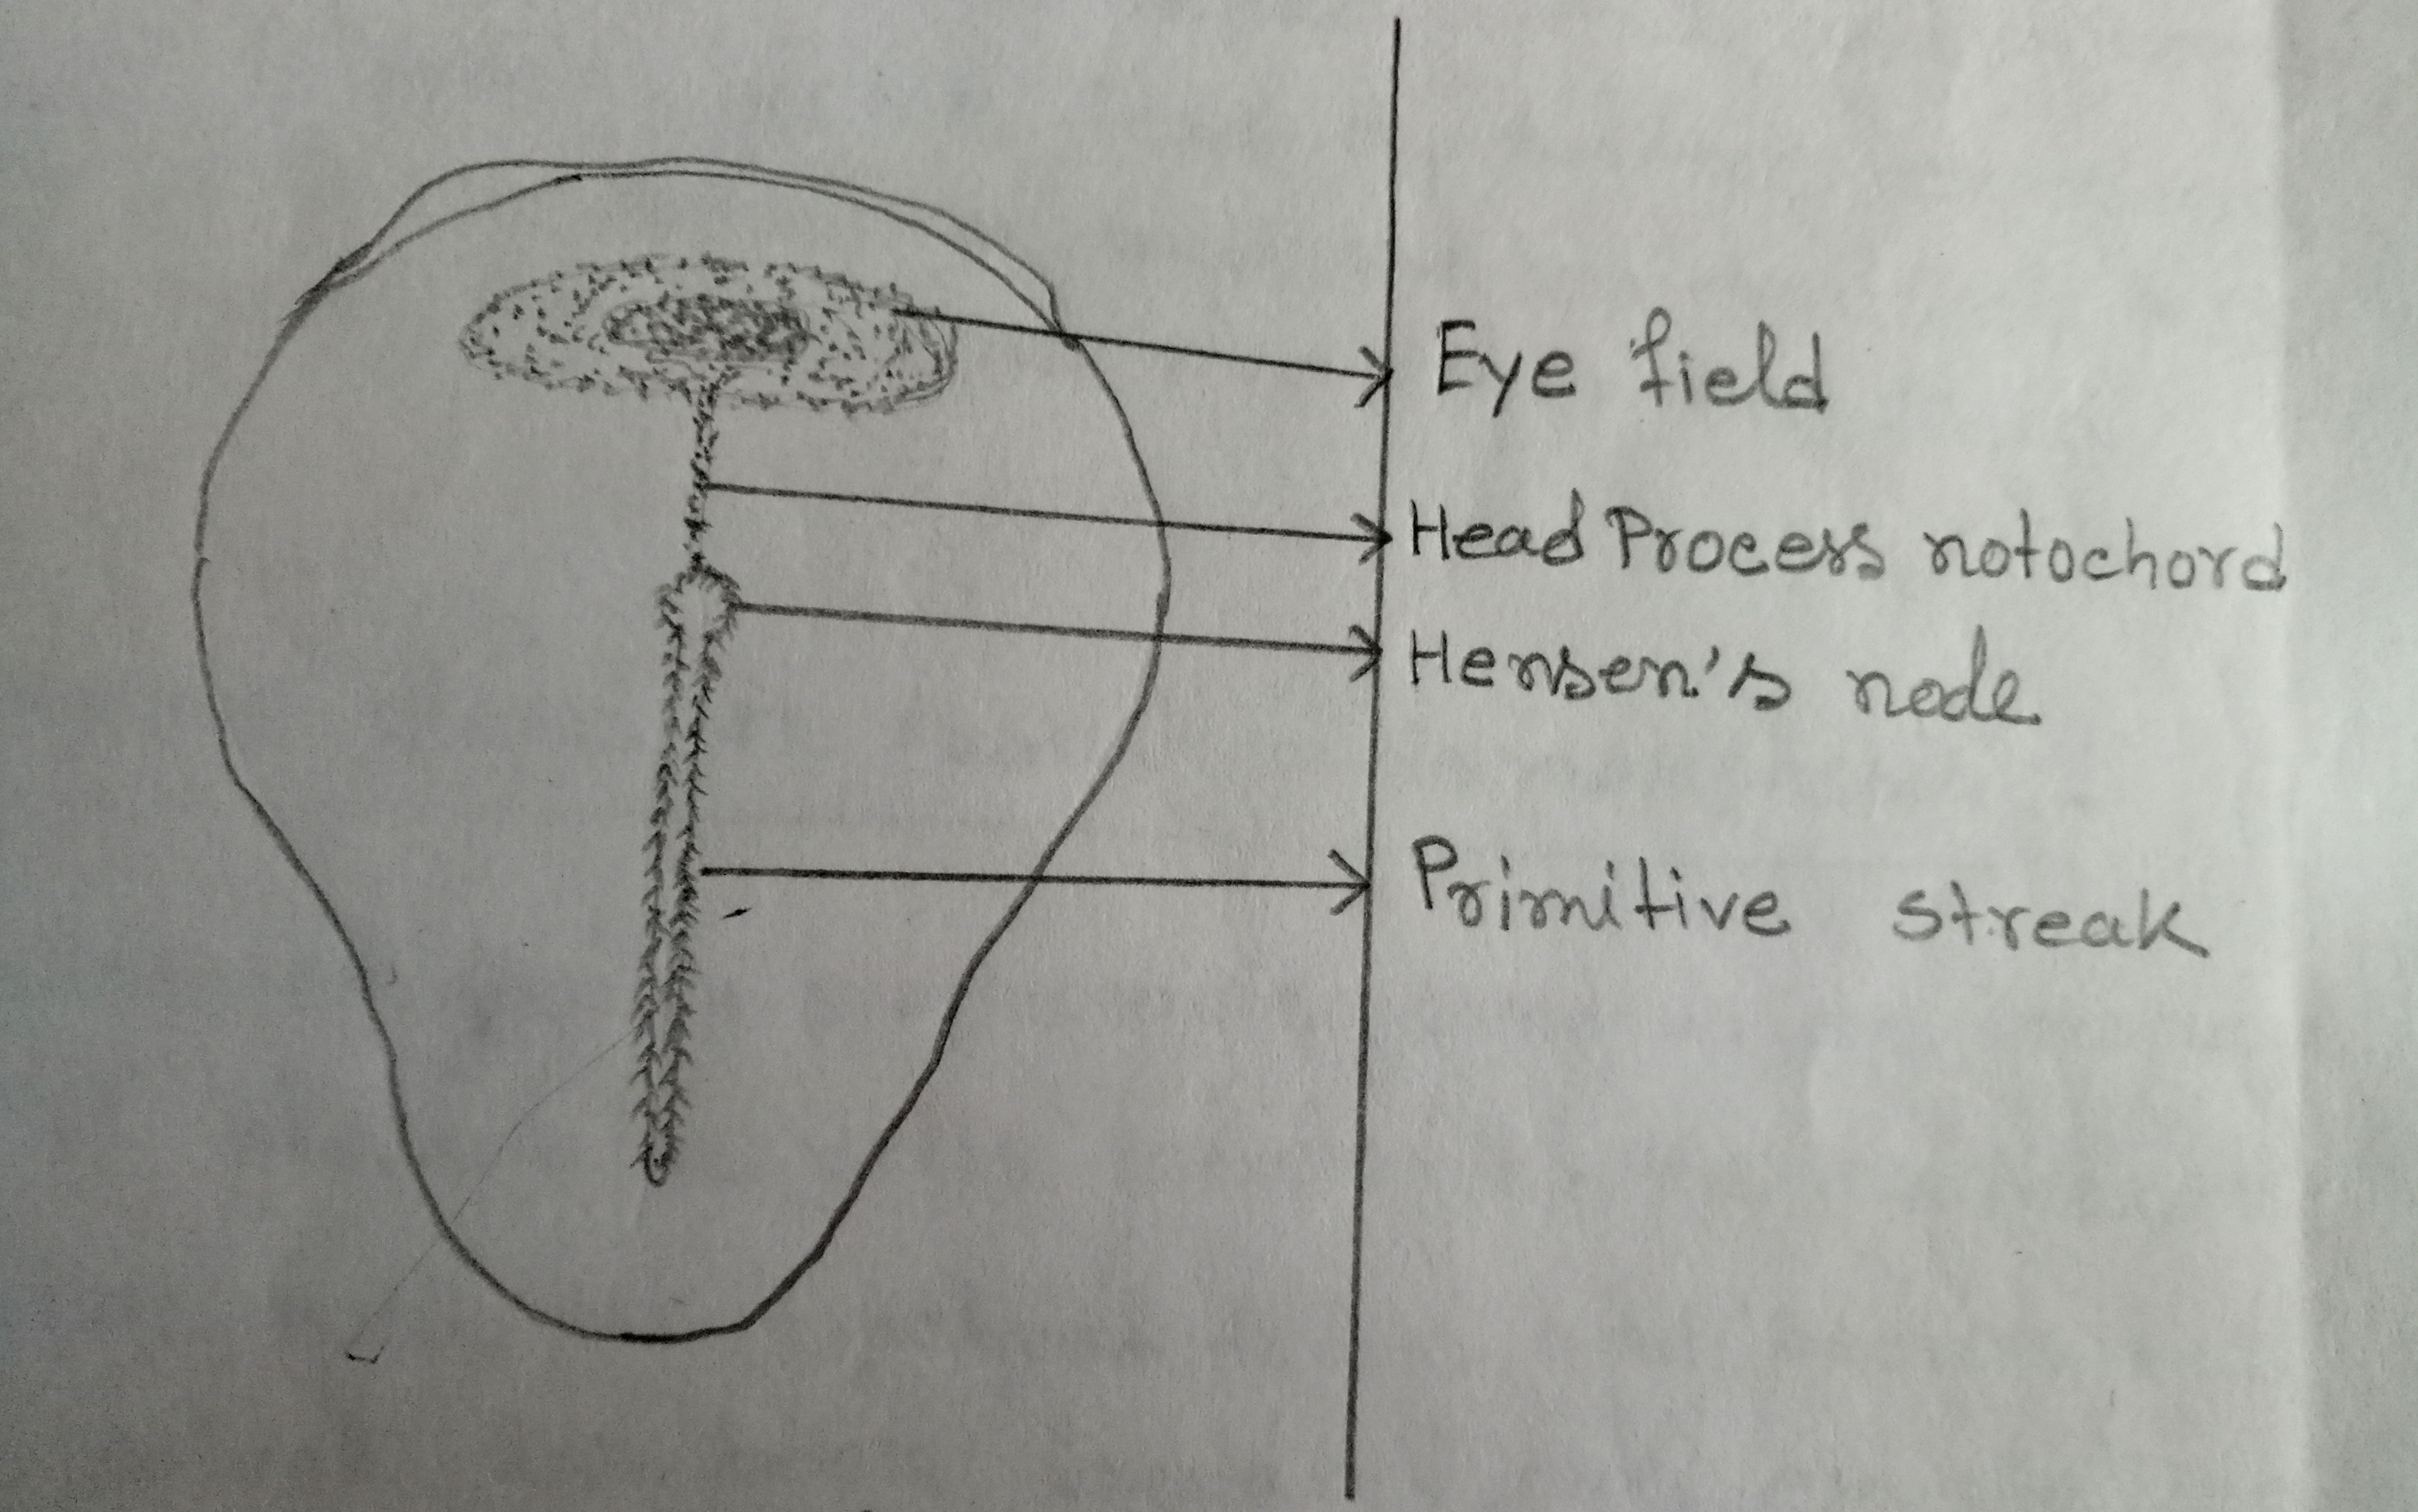 The eye-forming area of the chick blastoderm at the stage of the head process